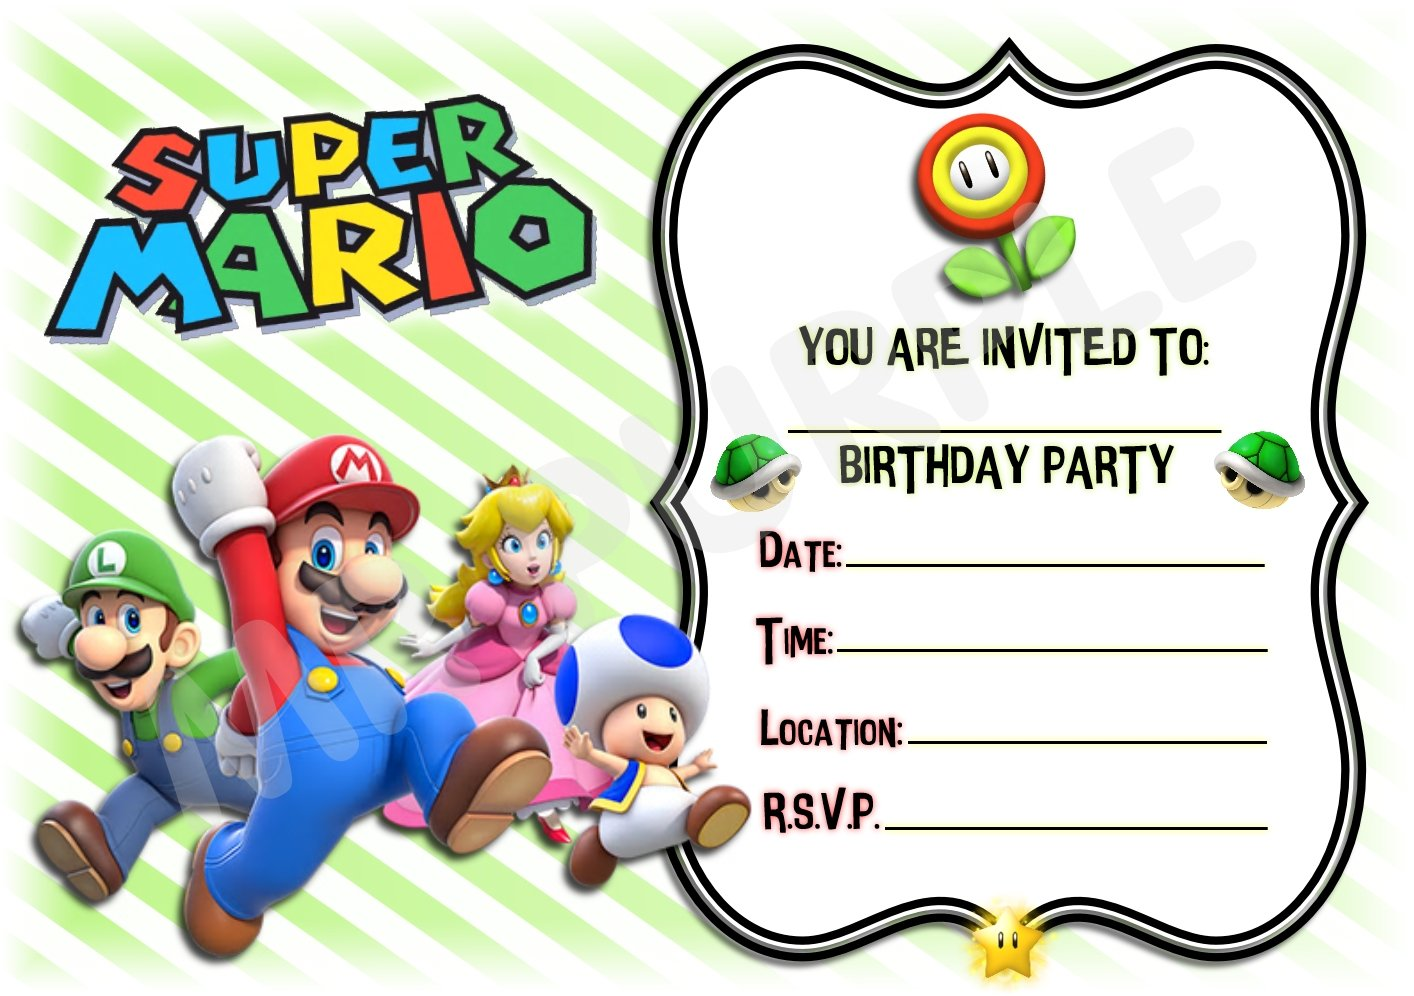 Super Mario Cast Birthday Party Invites - Landscape Striped Design ...